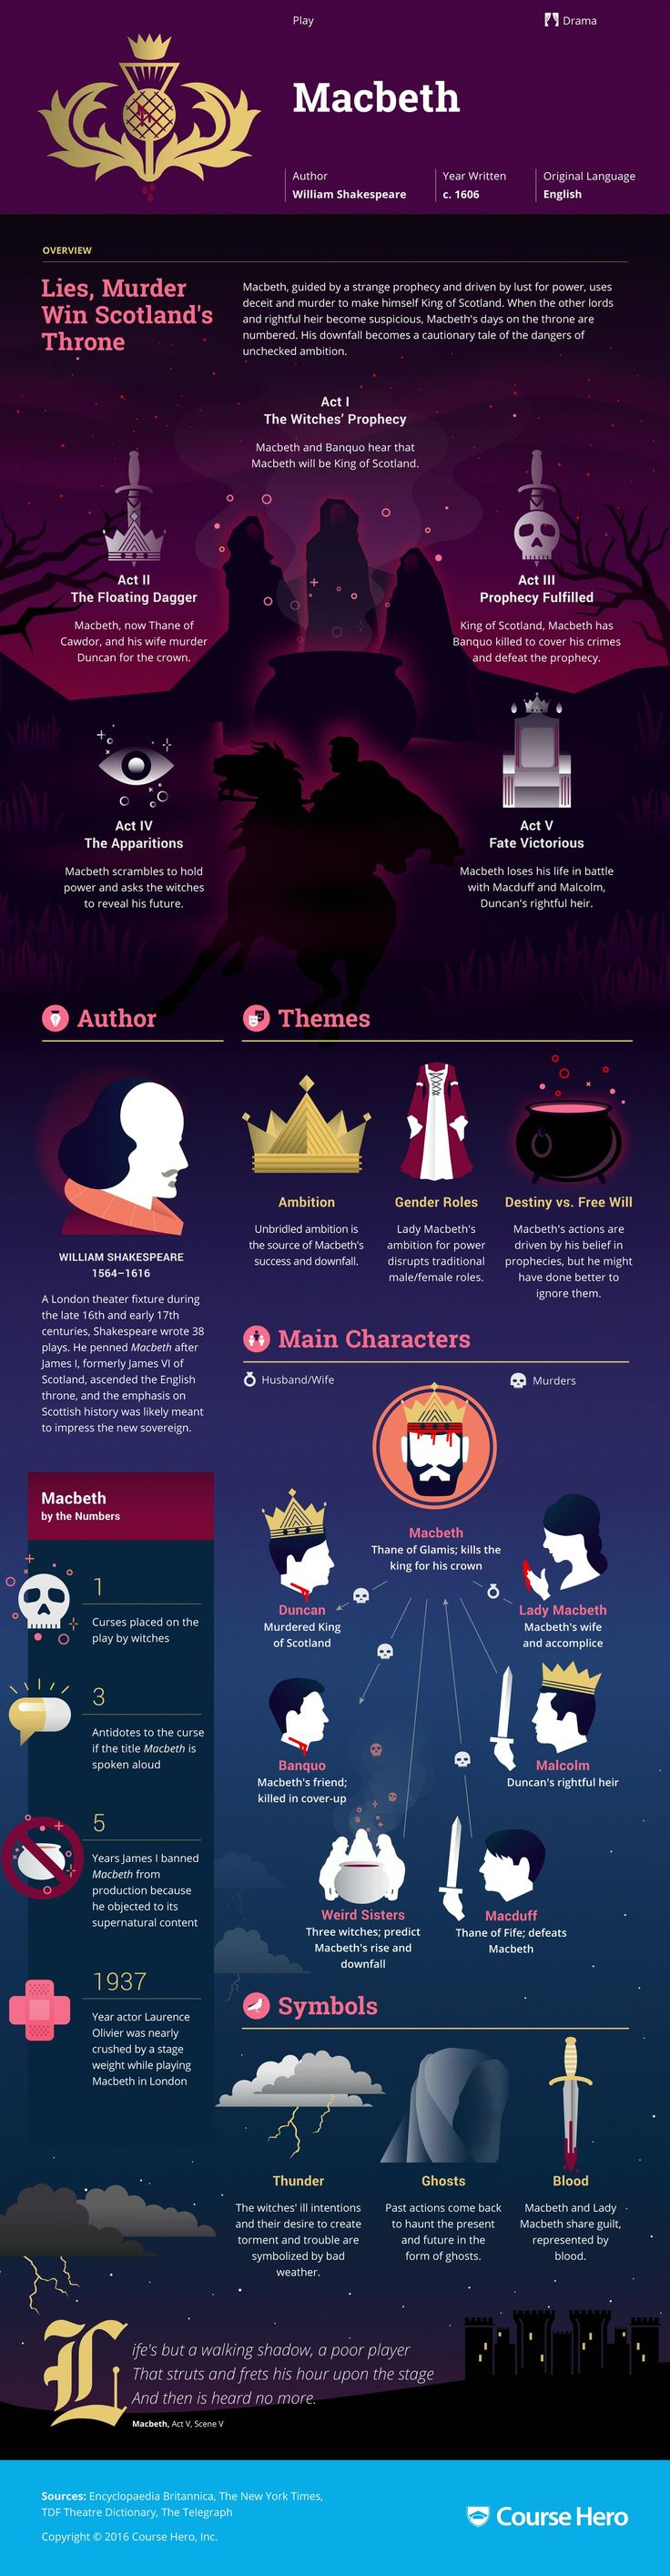 17 best ideas about shakespeare macbeth english study guide for william shakespeare s macbeth including scene summary character analysis and more learn all about macbeth ask questions